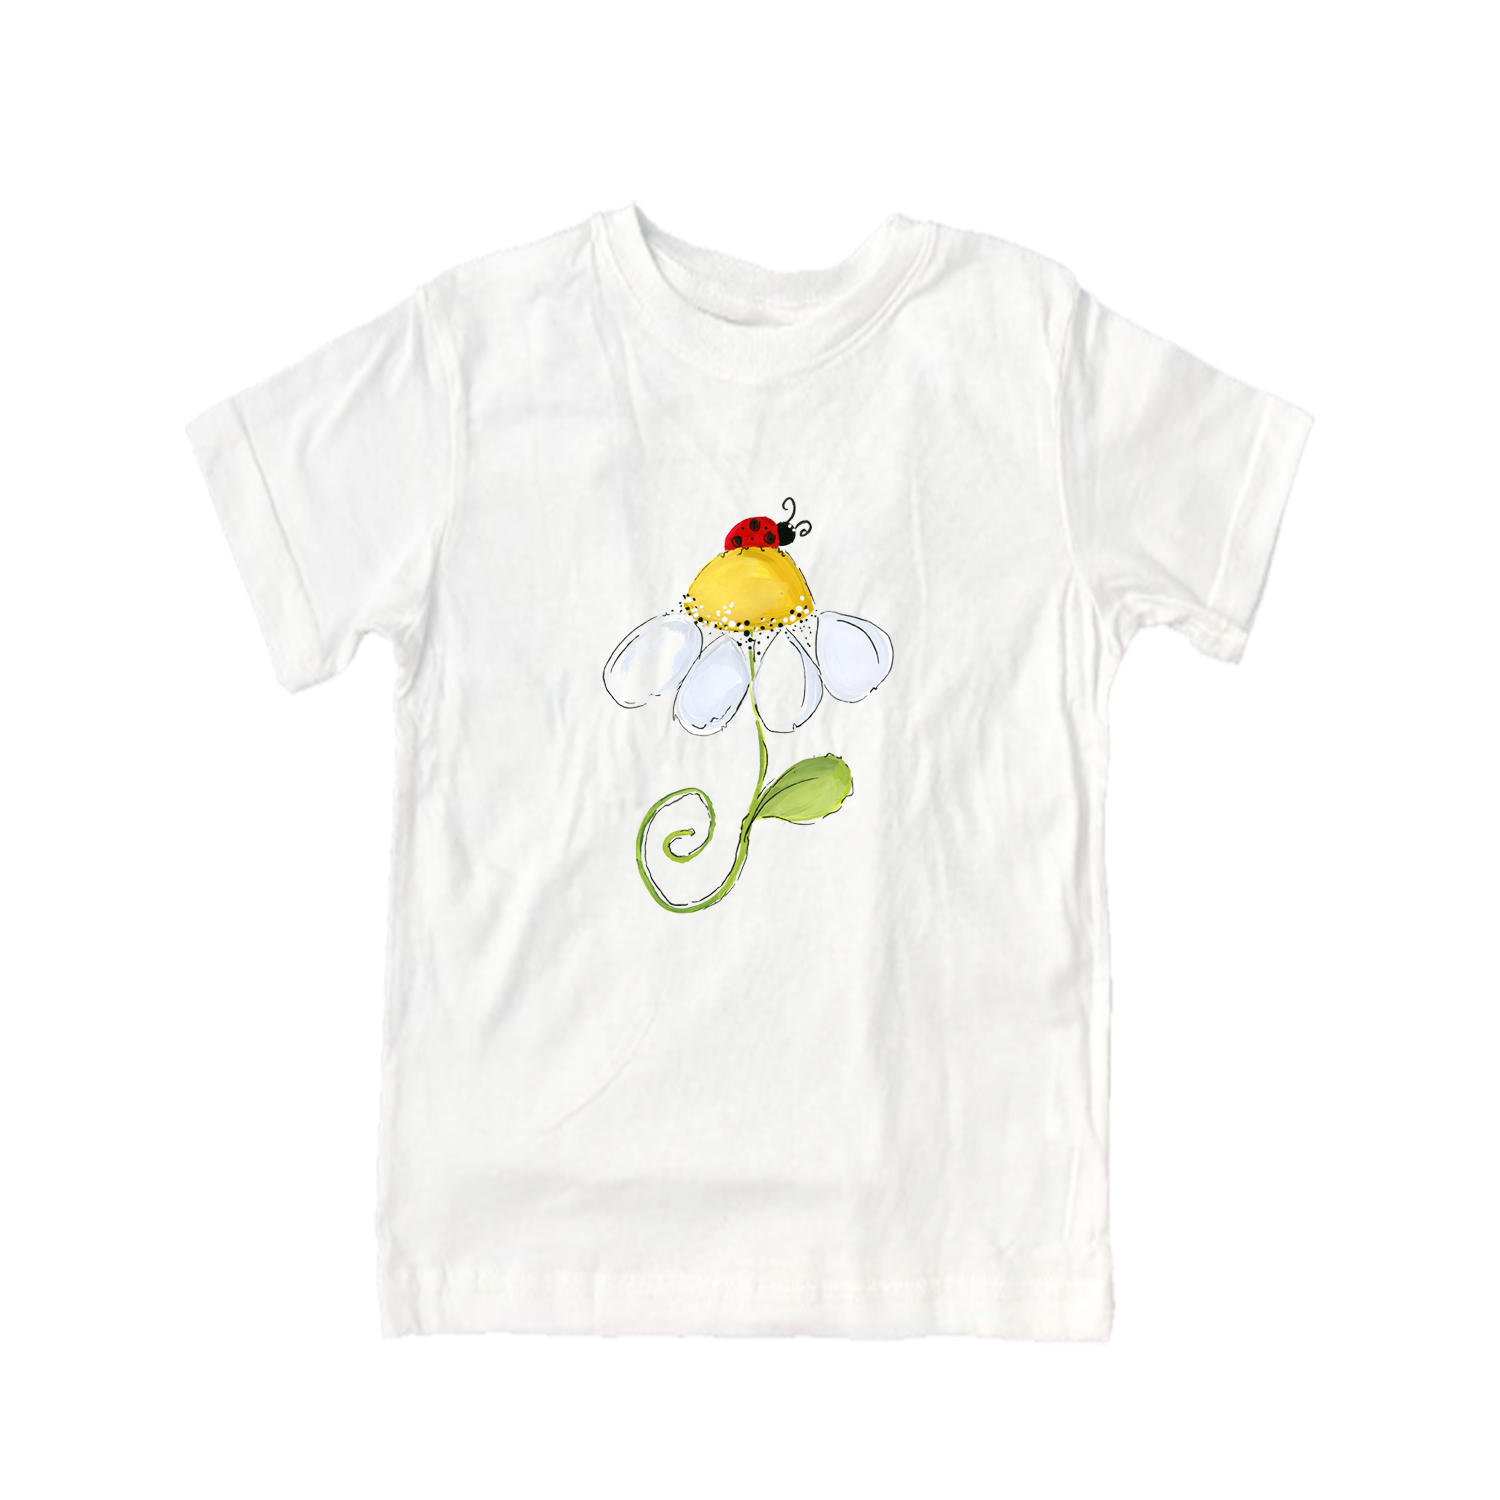 Girls Tee Shirt TS1072